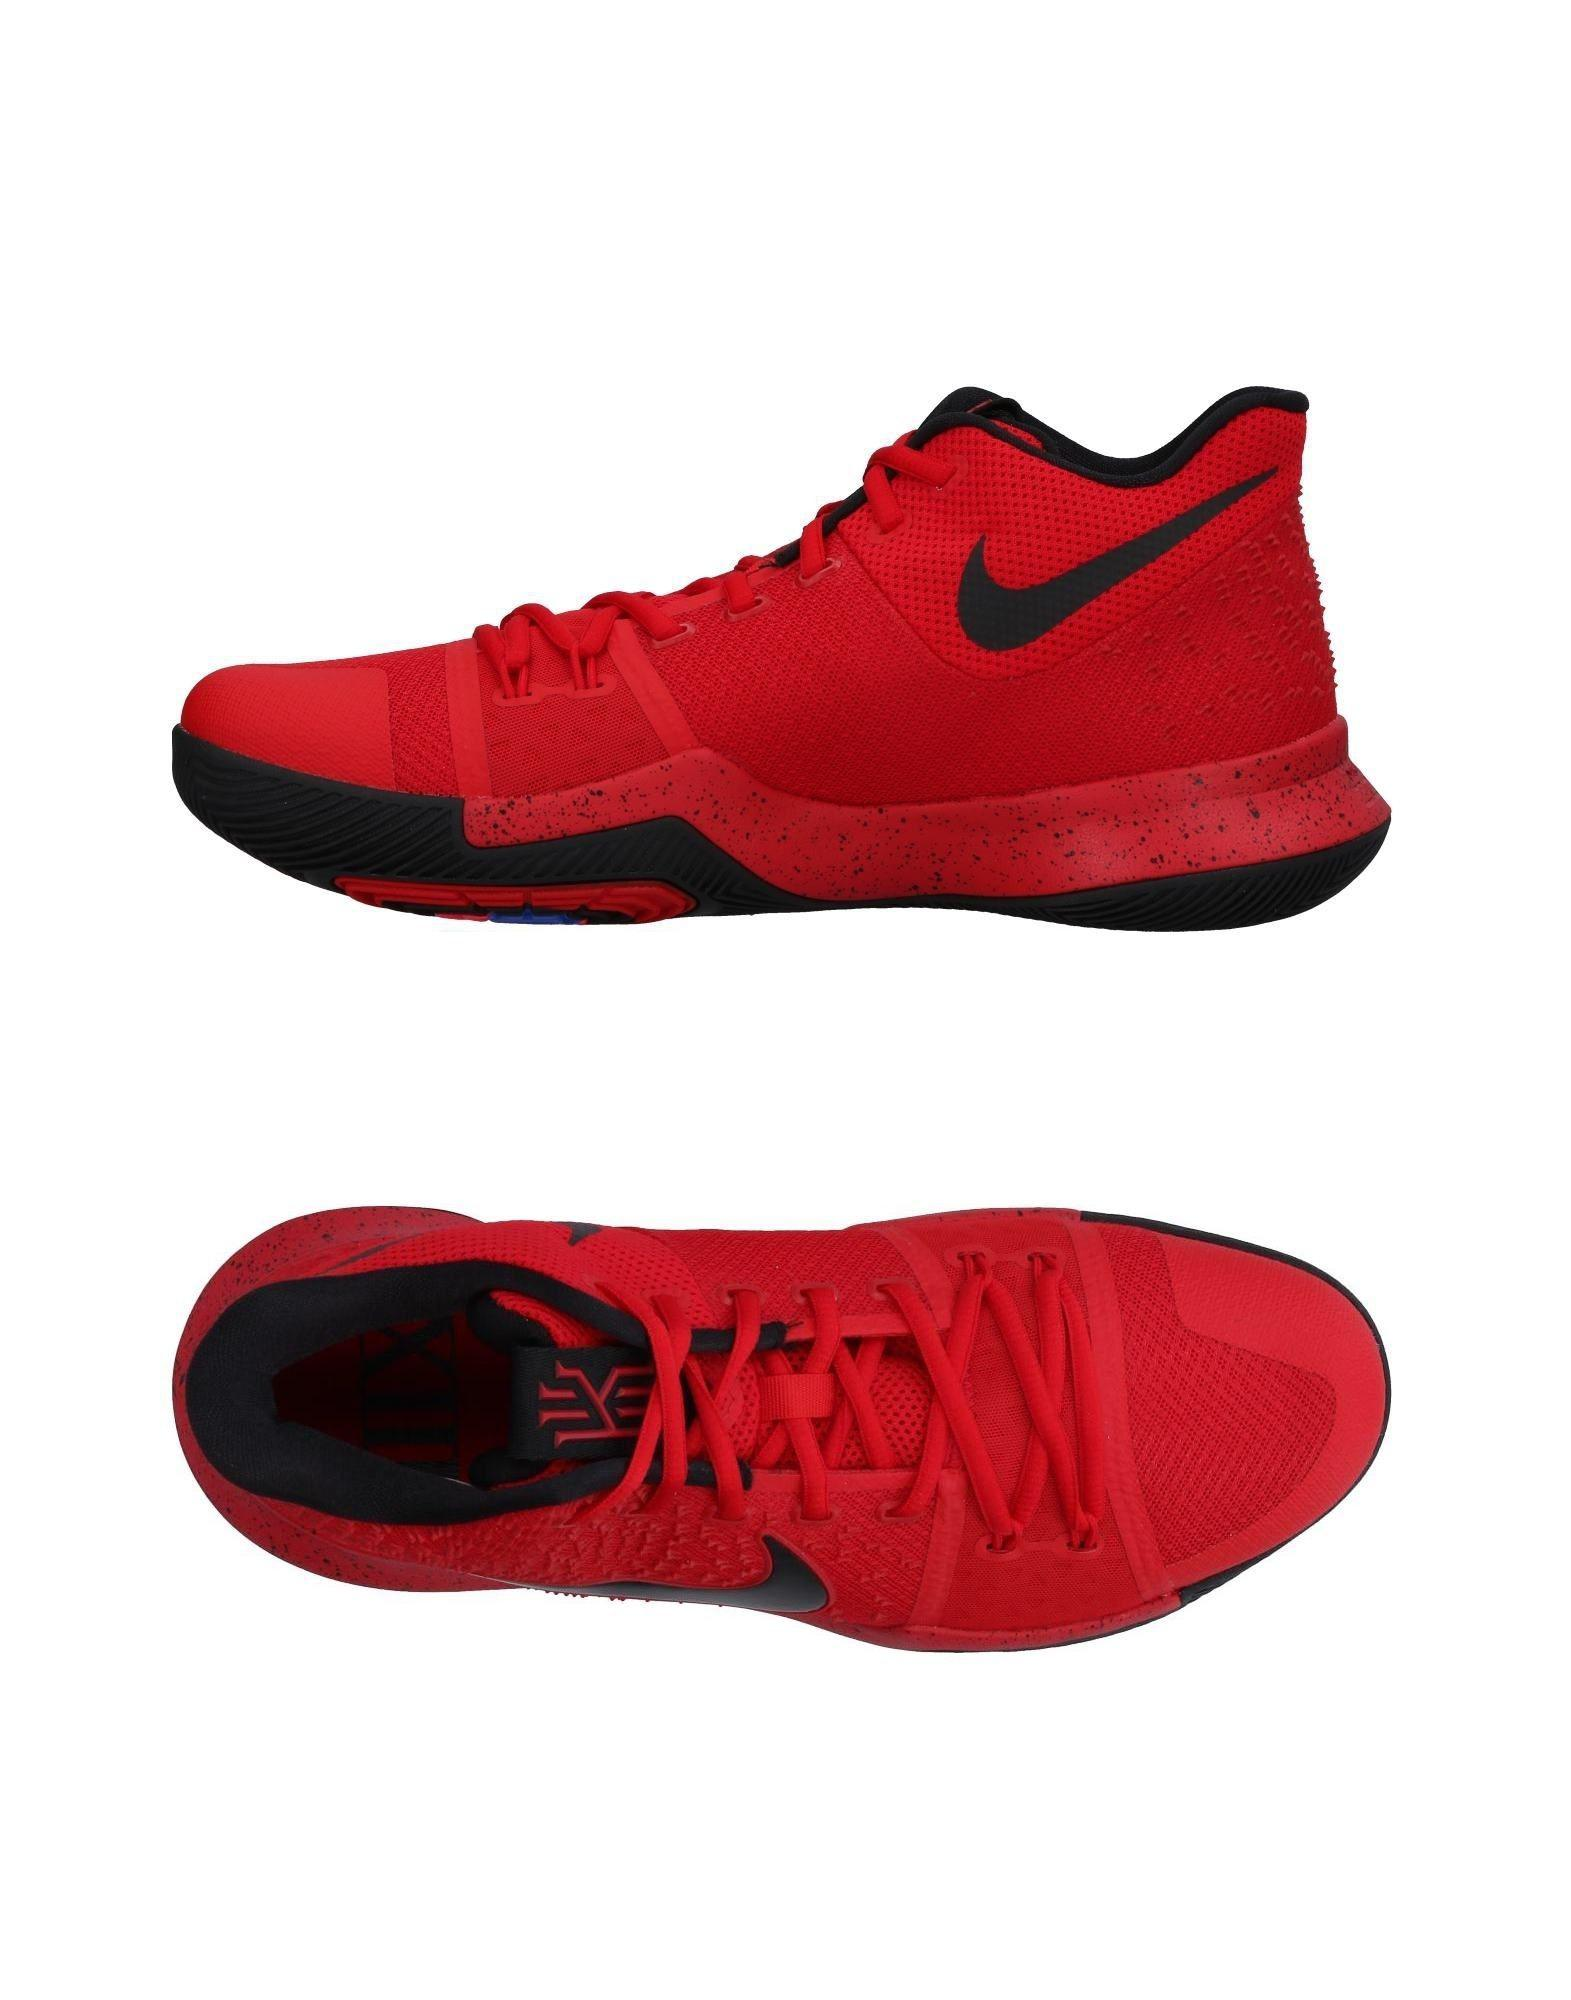 Free shipping BOTH ways on nike high tops, from our vast selection of styles. Fast delivery, and 24/7/ real-person service with a smile. Click or call